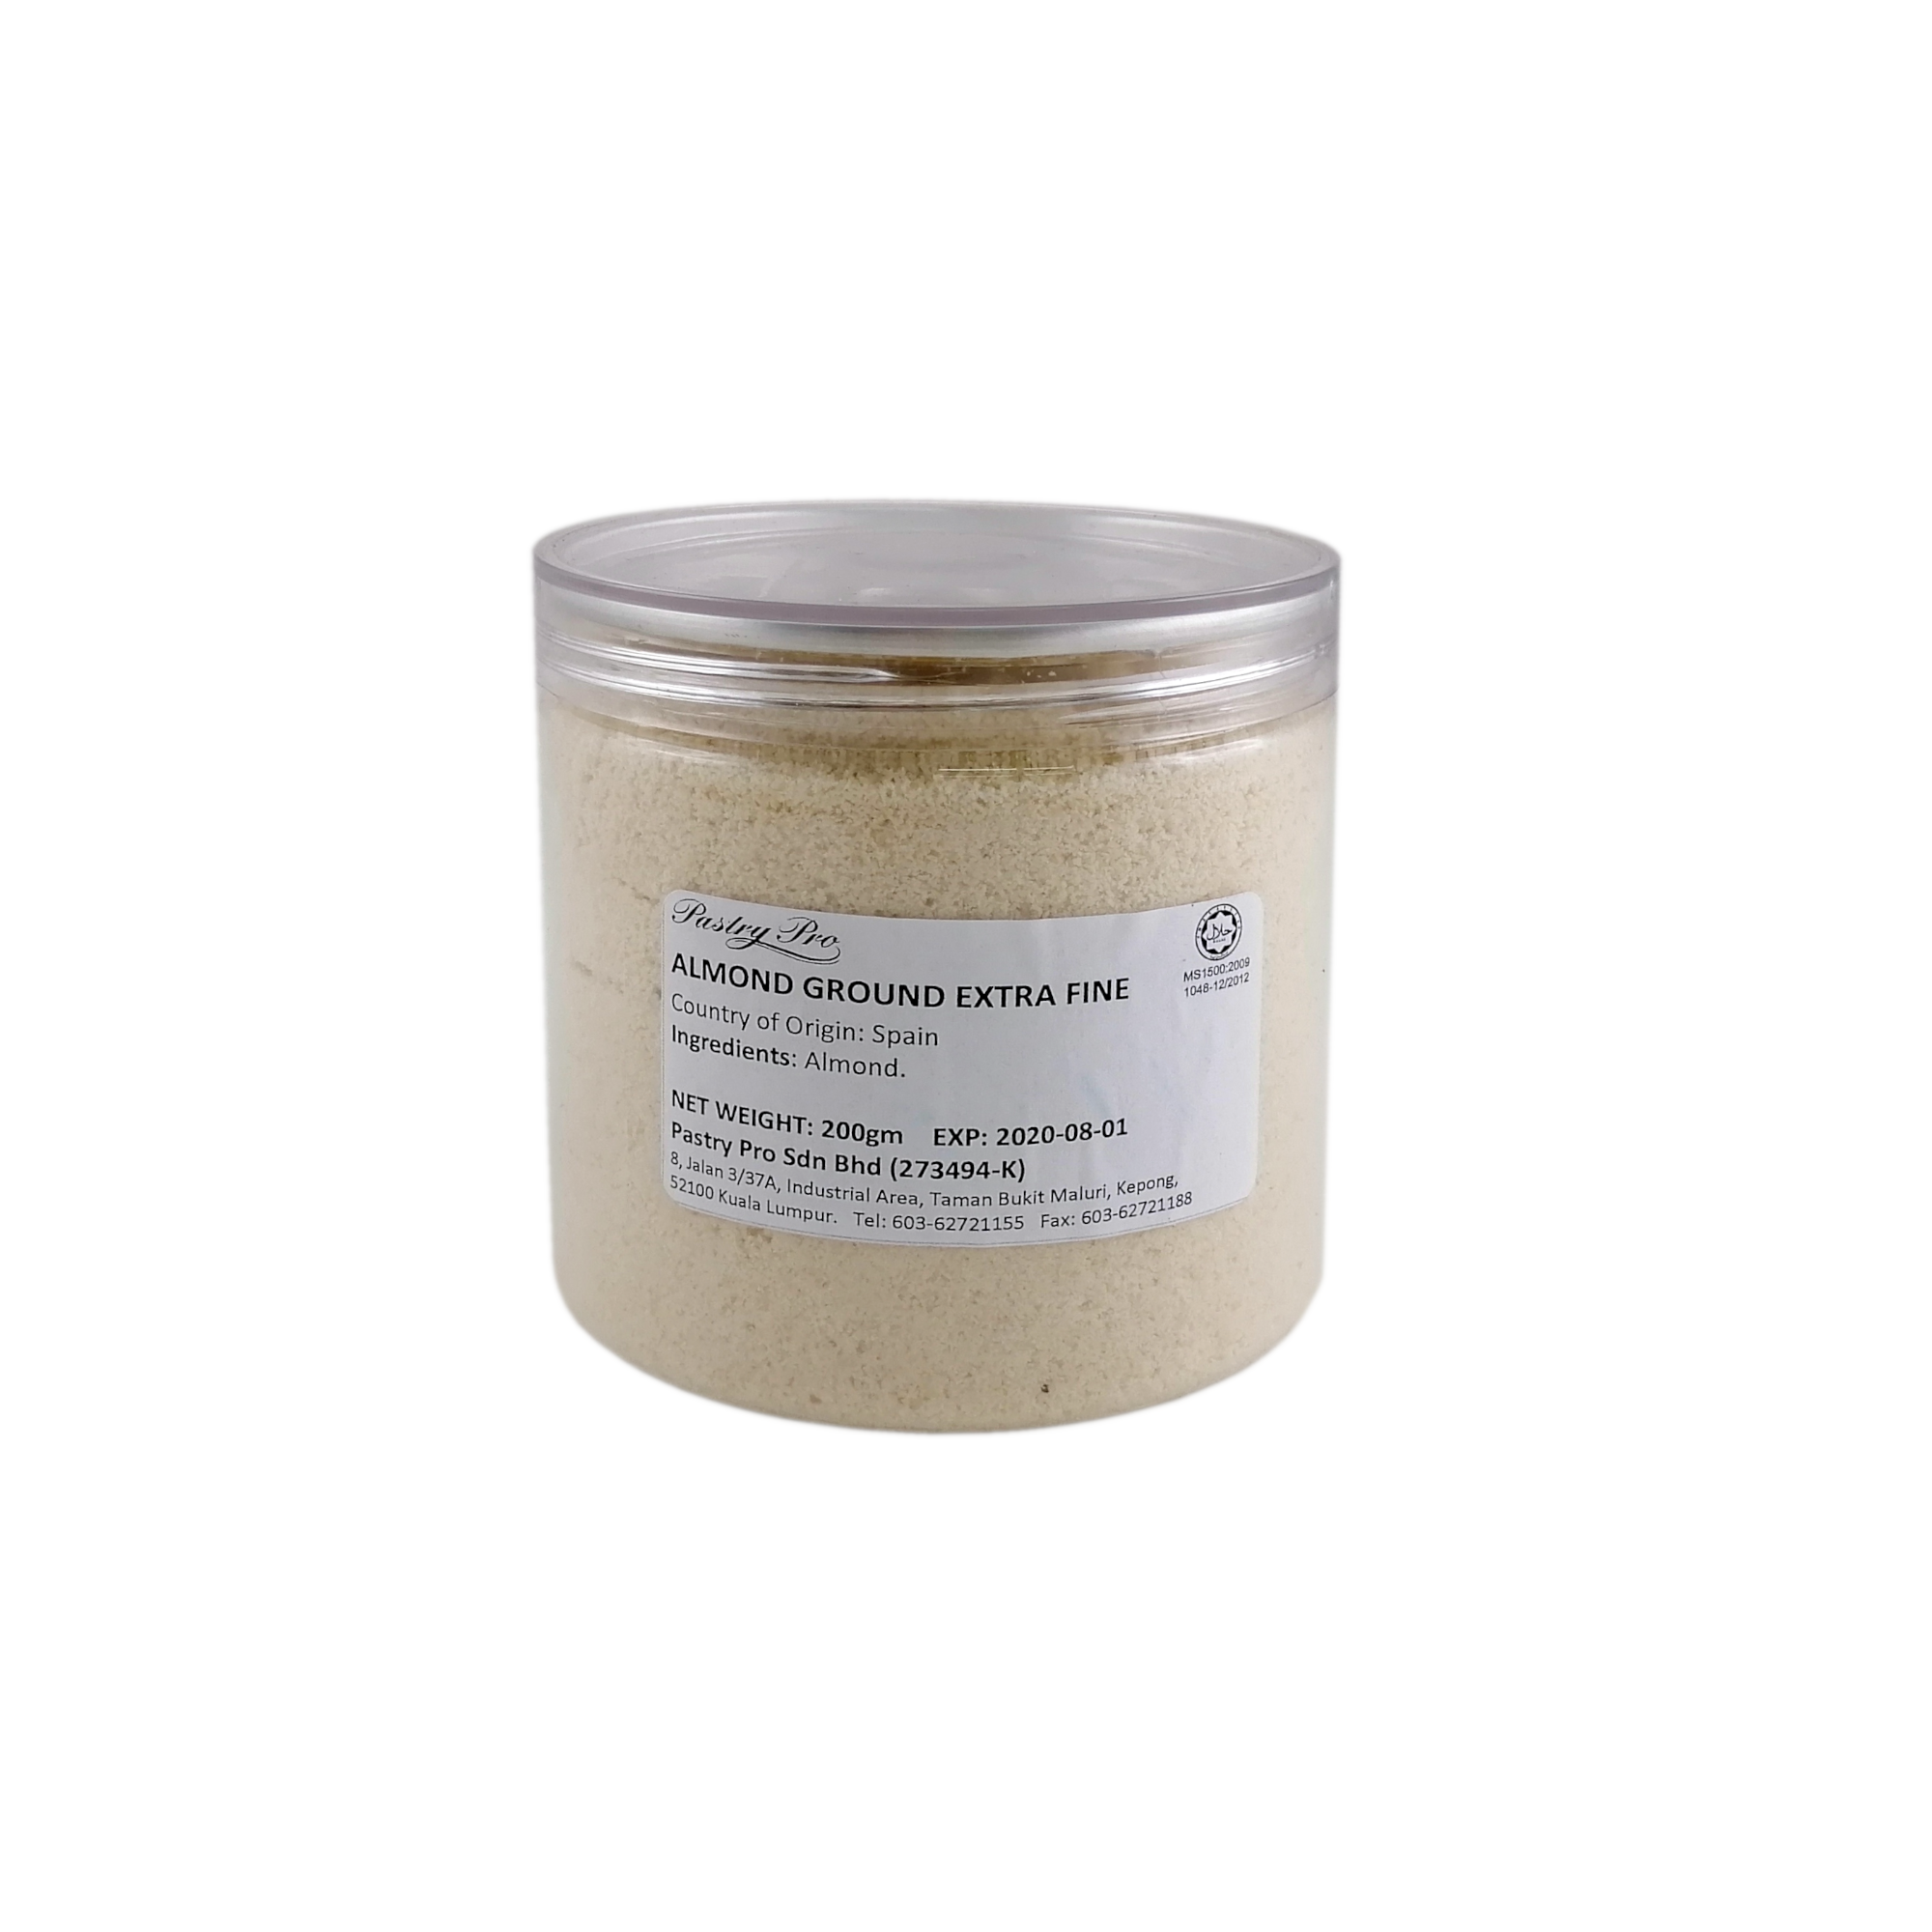 NDF027 Almond Ground Extra Fine.png